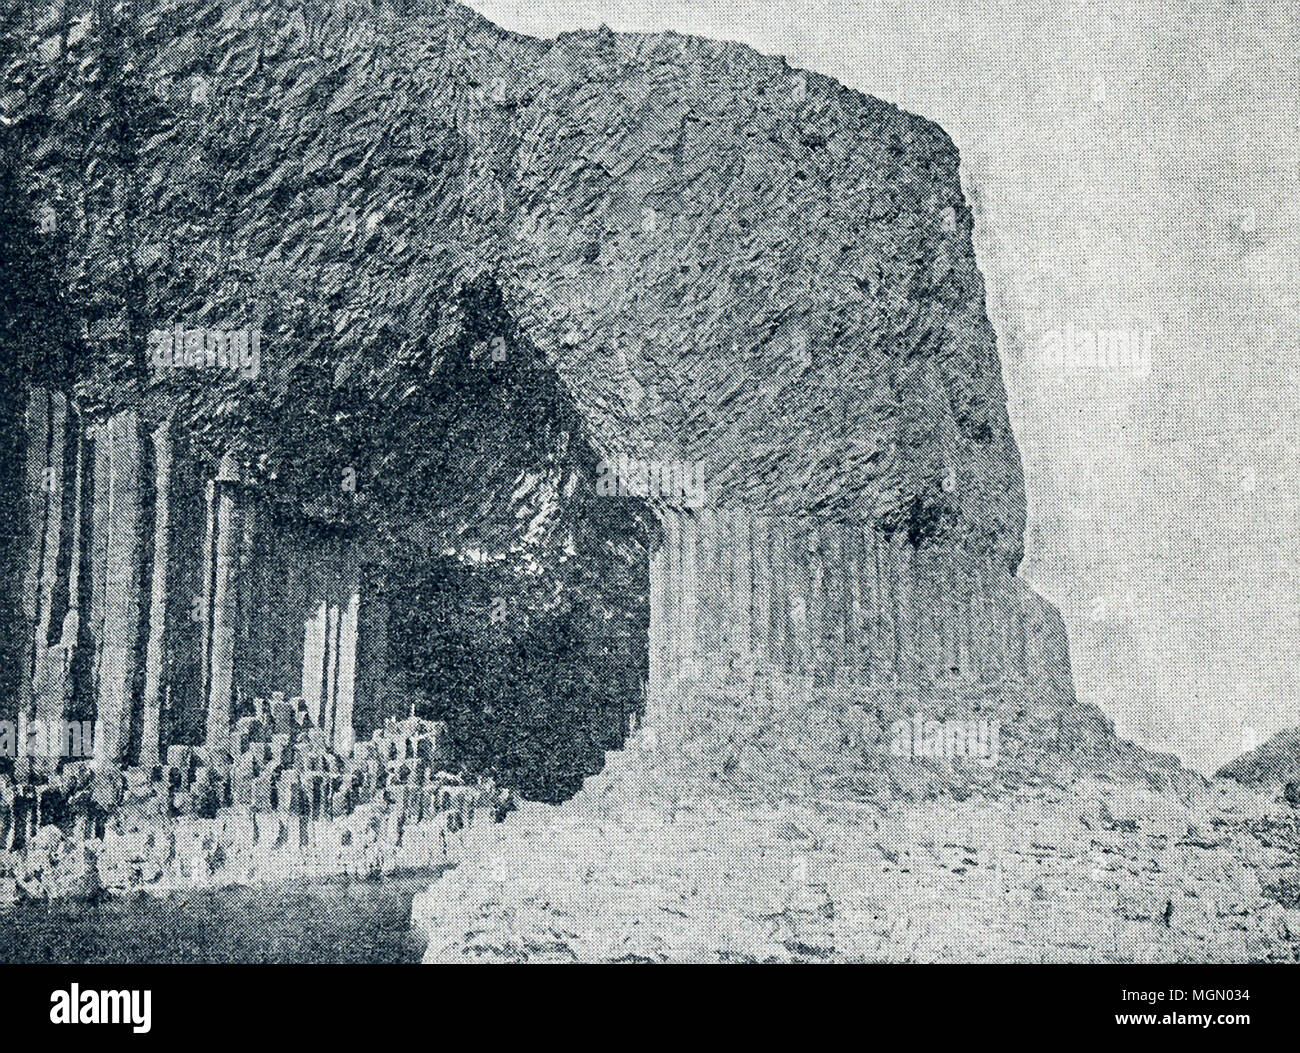 This photo, which dates to the late 1890s, shows Fingal's Cave, an unusuallt beautiful cave on Staffa Island in the Inner Hebrides in Scotland. It is associated with many legends. Mendelssohn composed an overture called The Hebrides or Fingal's Cave. - Stock Image